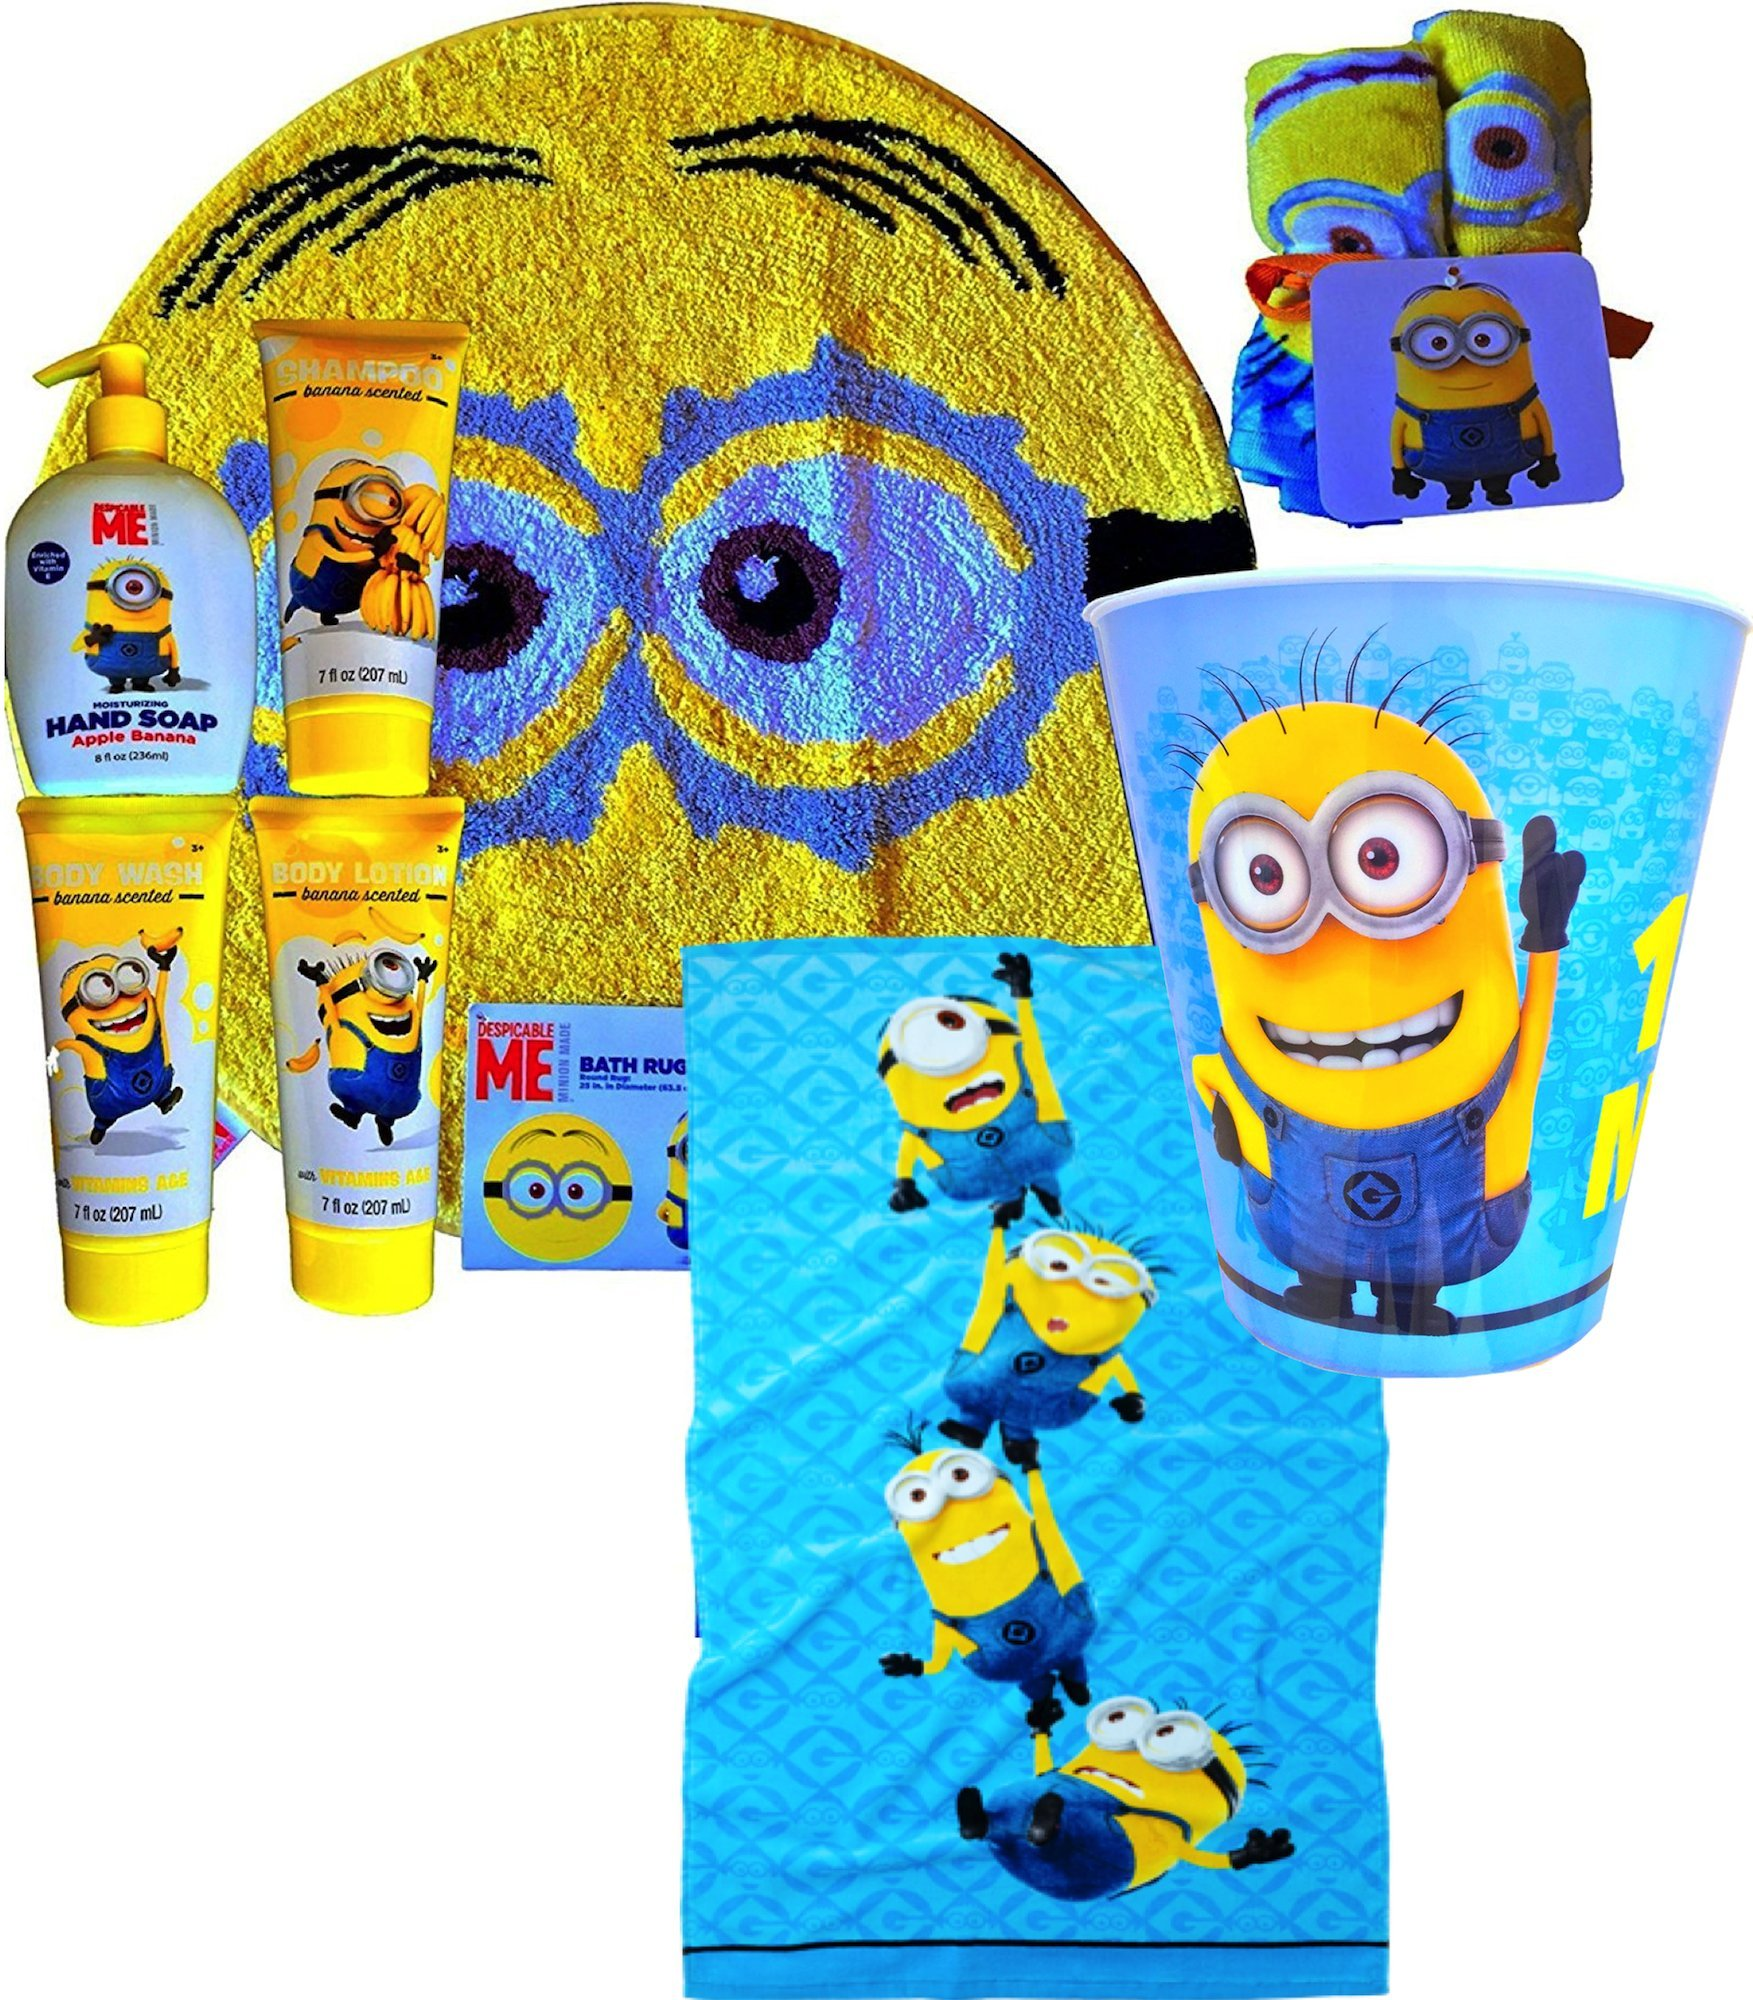 Despicable me minions themed ultimate children's bathroom accessory gift set inlcudes bath rug , 6pack washcloth, large hand towel, wastebasket and bananna scented 4 pack, shampoo , hand soap , body wash, body lotion great quality gift set by Despicable Me Minions